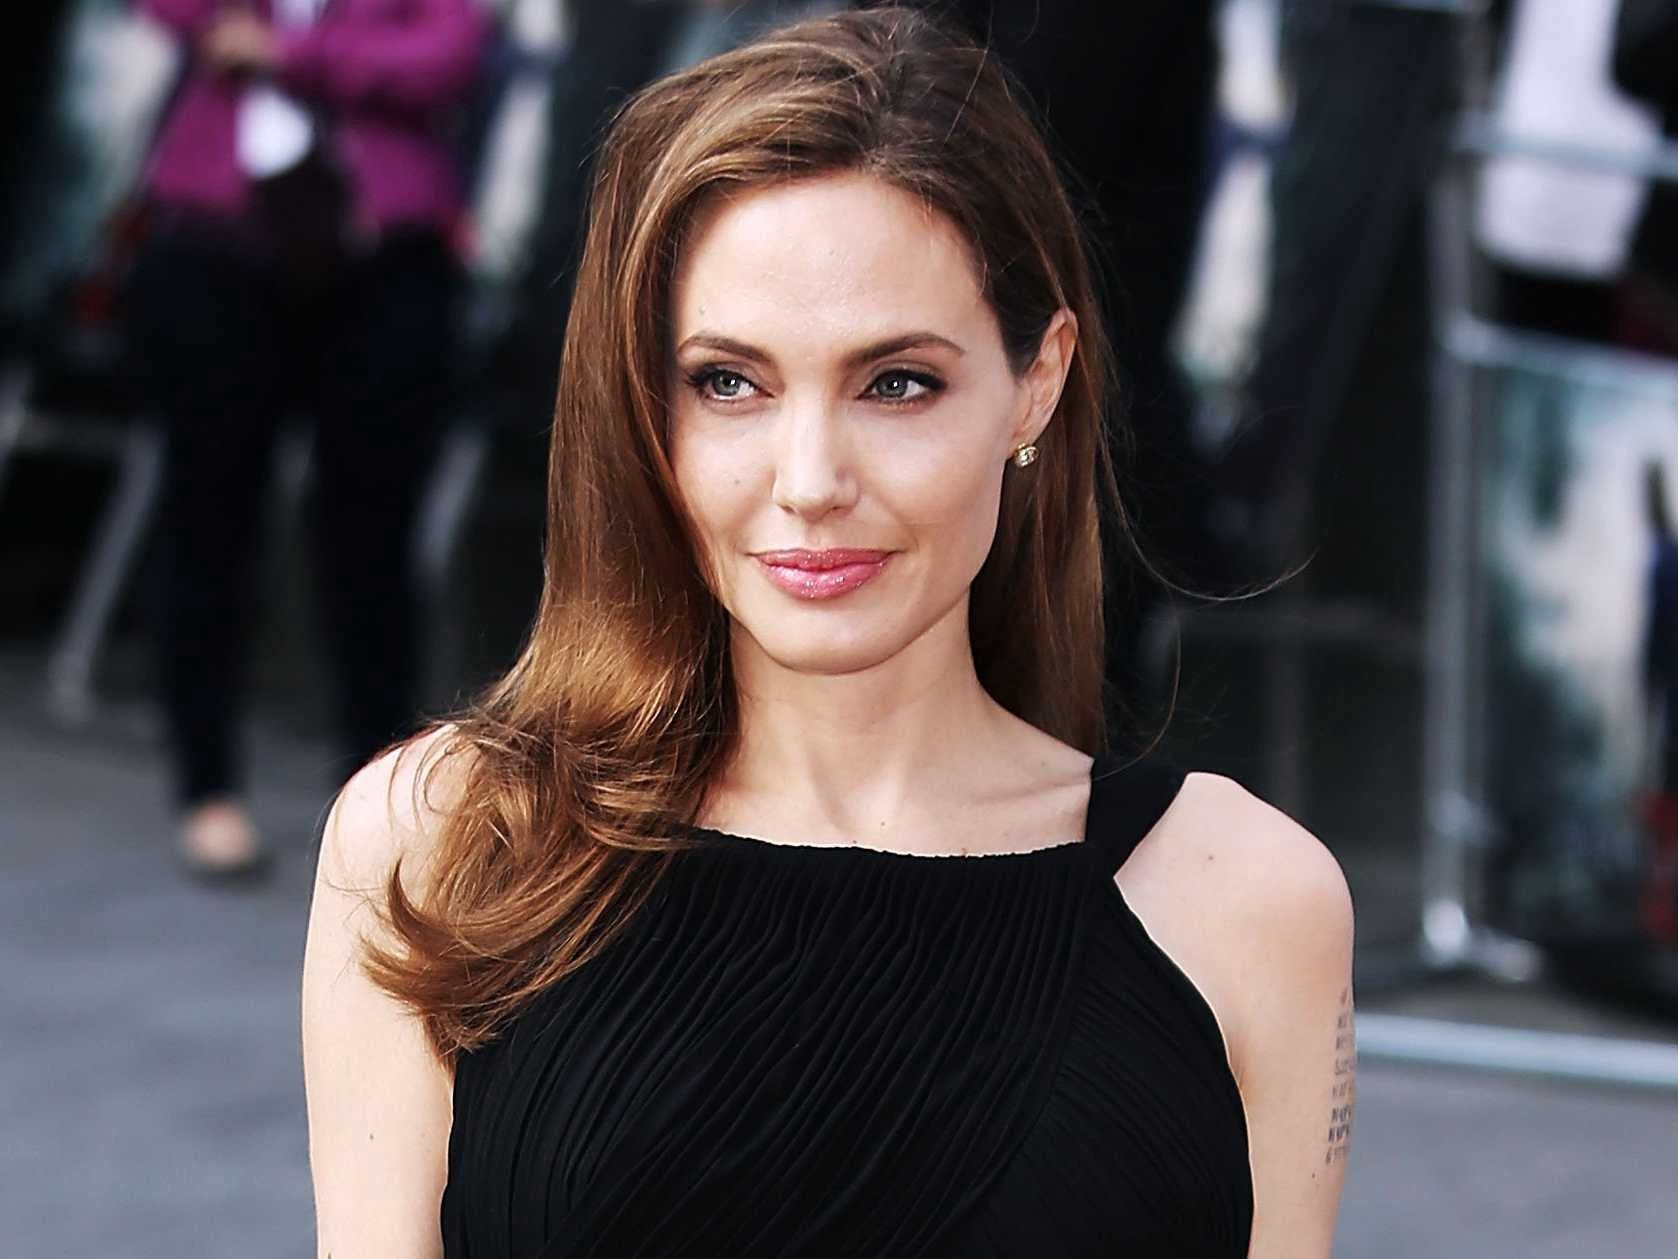 Angelina Jolie Cyborg 2 1993 story of strive: angelina jolie diagnosed with bell's palsy